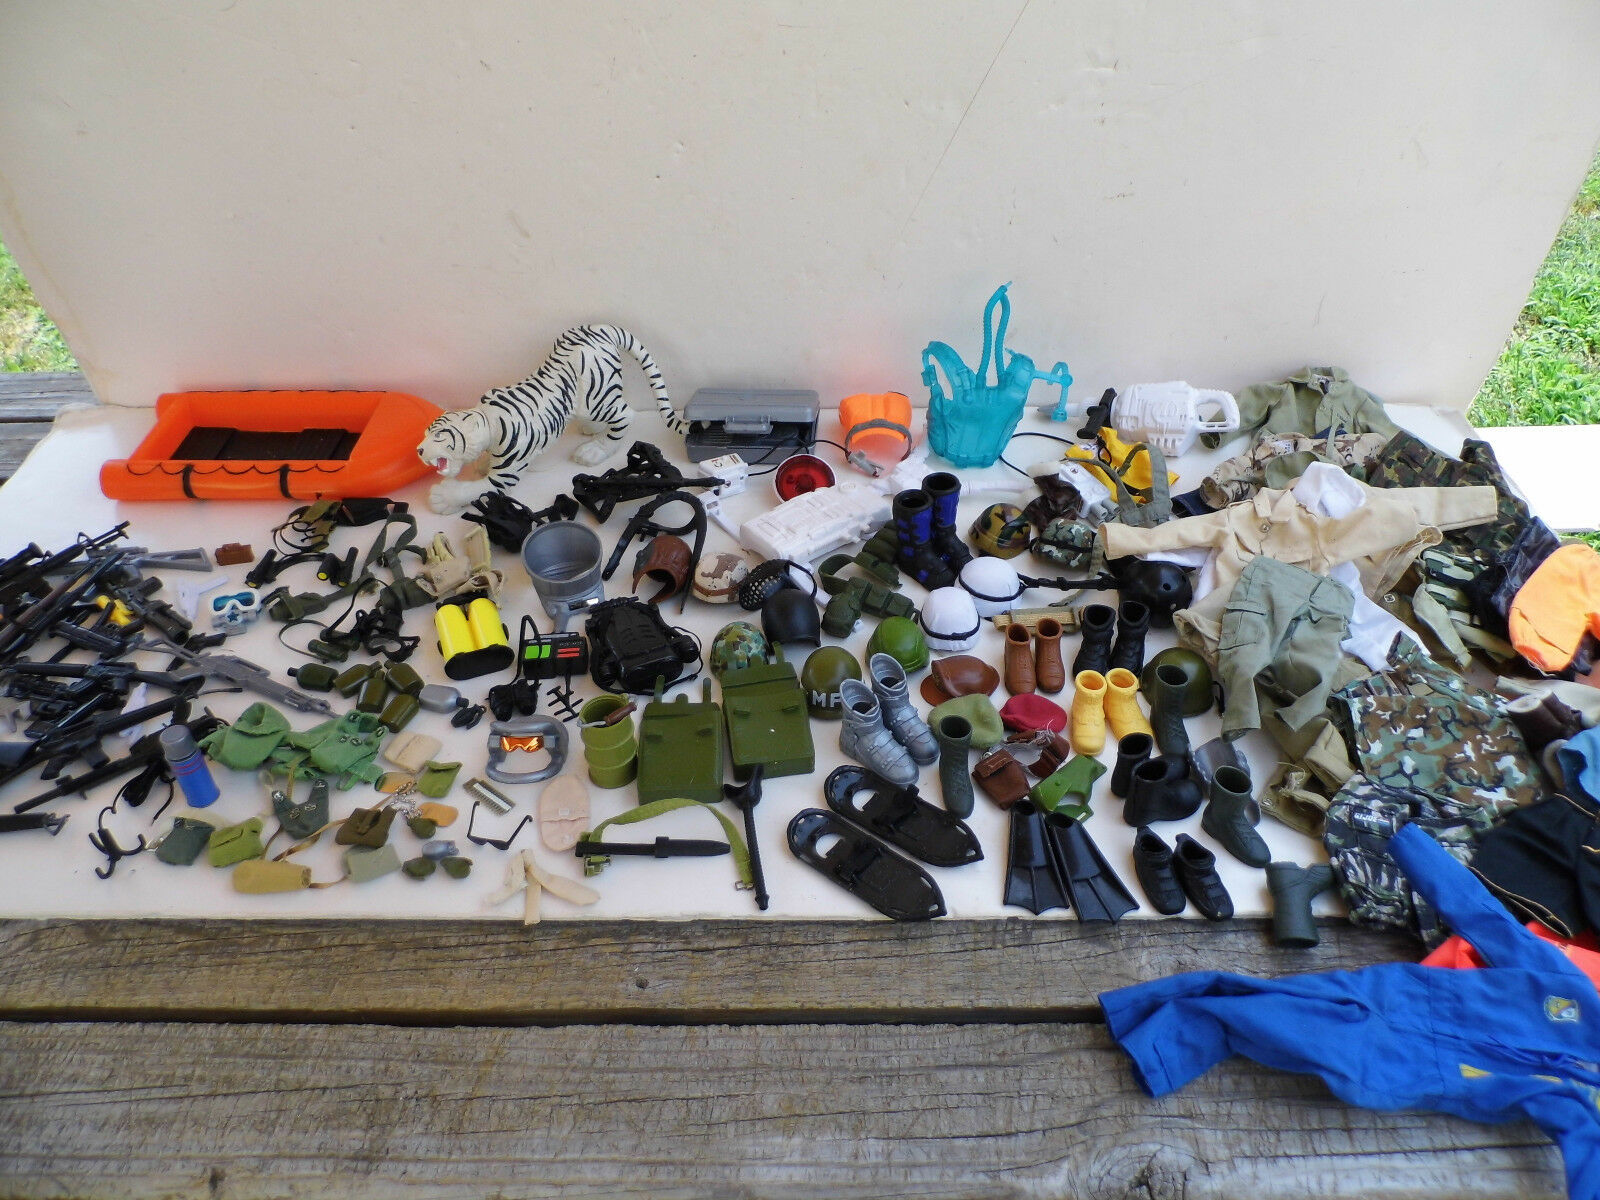 Vintage 1990s Weapons Accessories Lot for Action Action Action Man GI Joe Mac Hasbro Mixed Lot 03ef4e